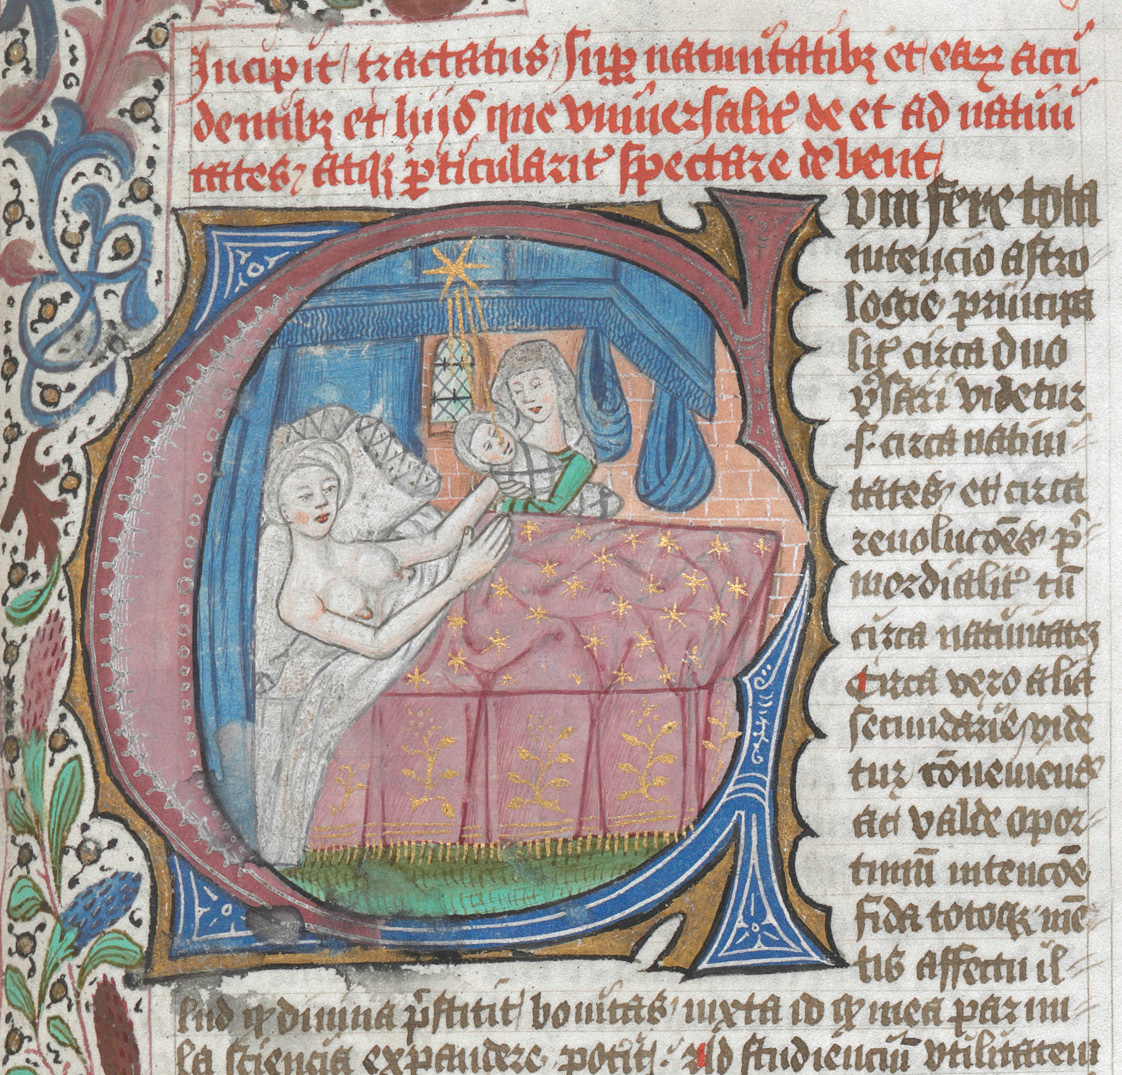 Ancient Medieval Literature: An Honest Bed: The Scene Of Life And Death In Late